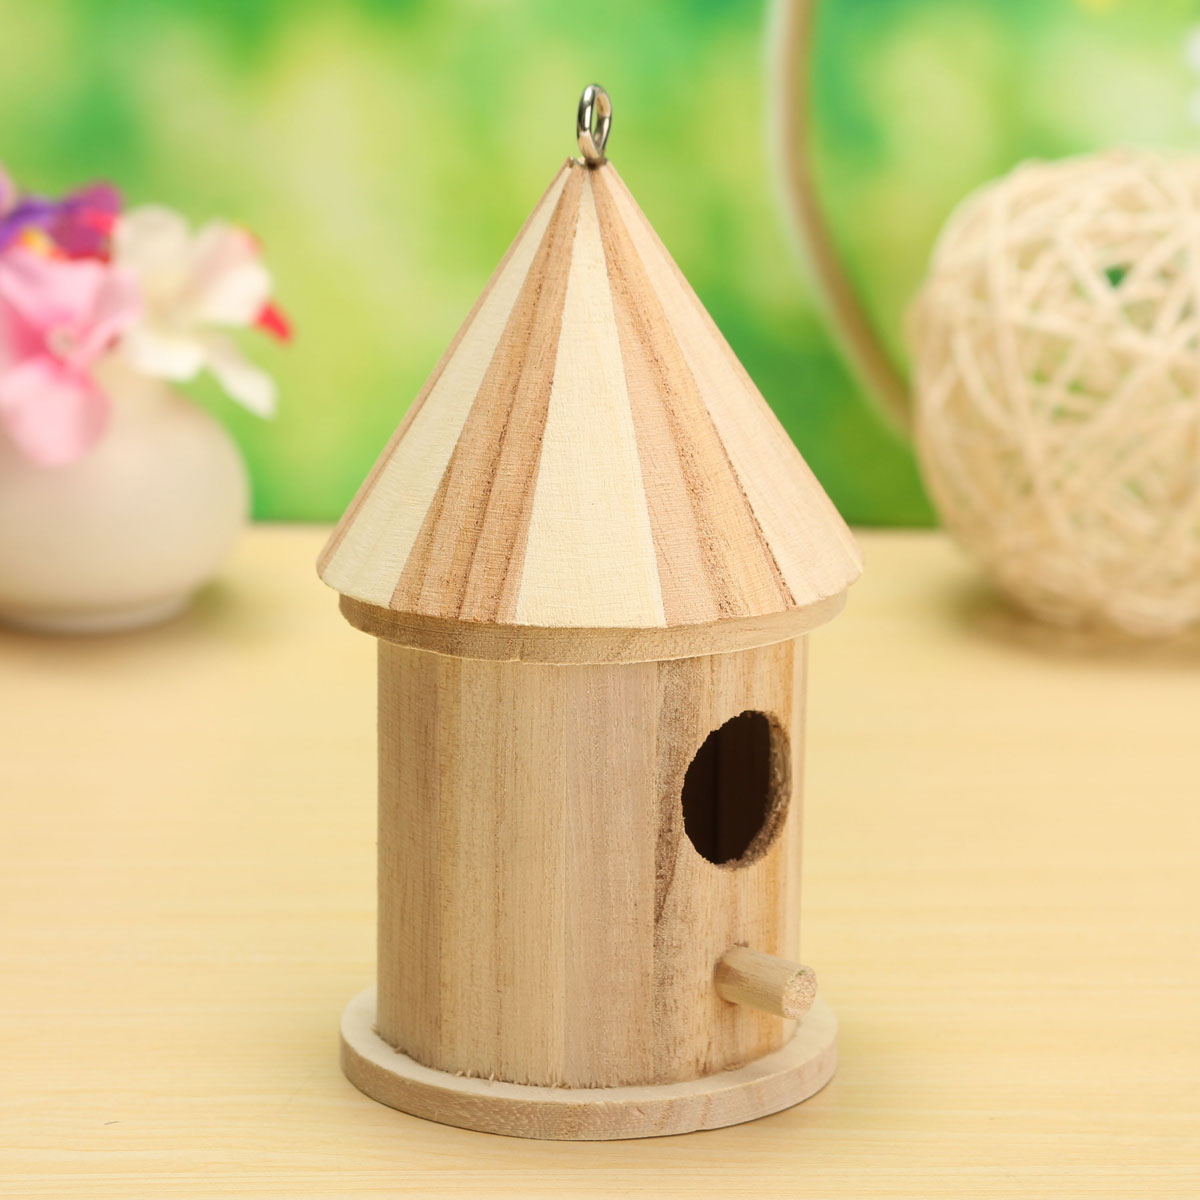 New wooden bird house birdhouse hanging nest nesting box for Bird home decor